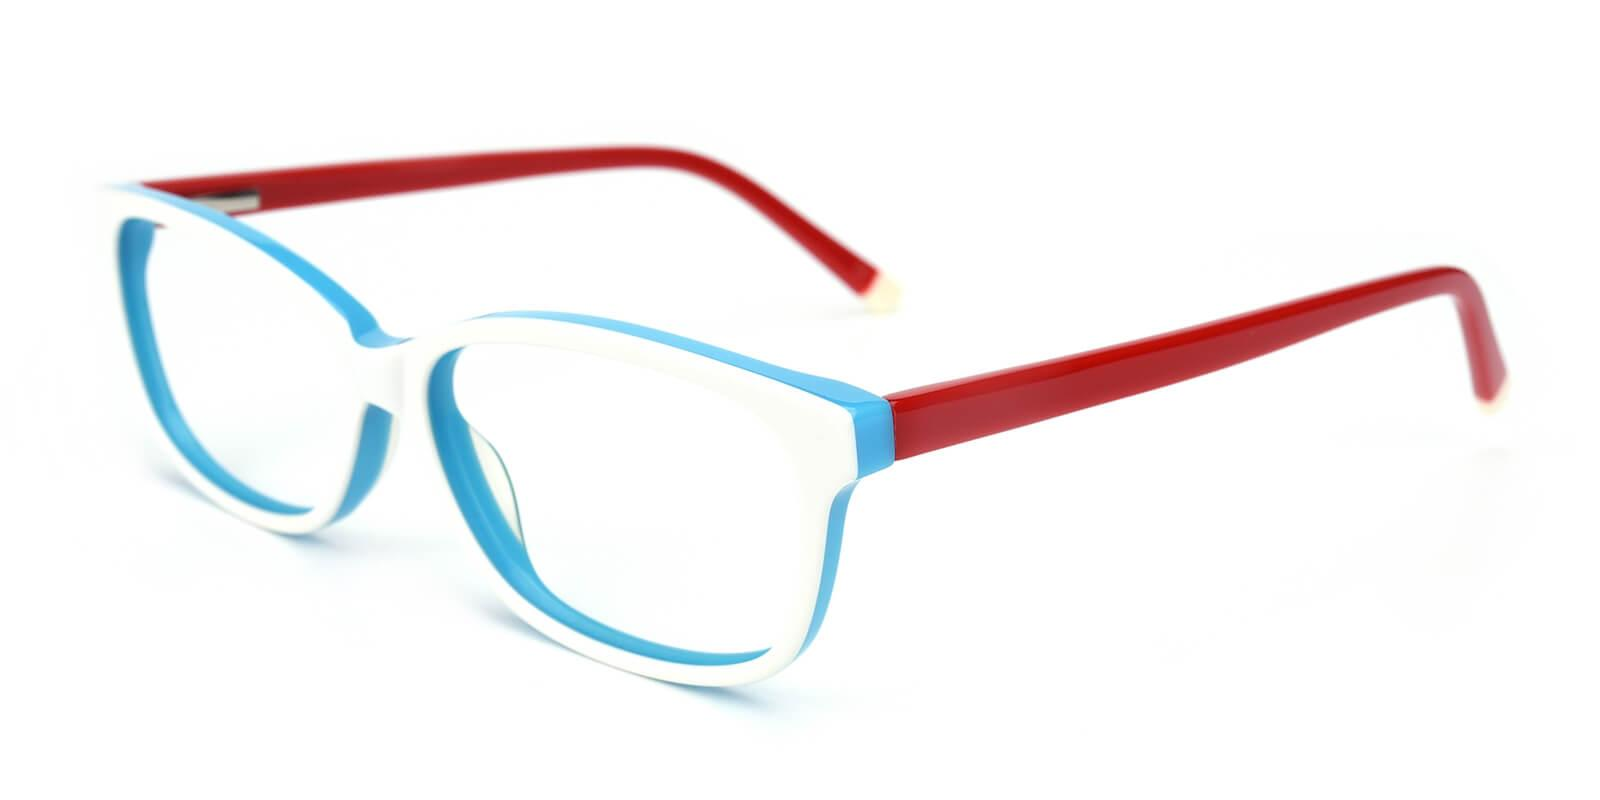 Zion-White-Cat-Acetate-Eyeglasses-additional1